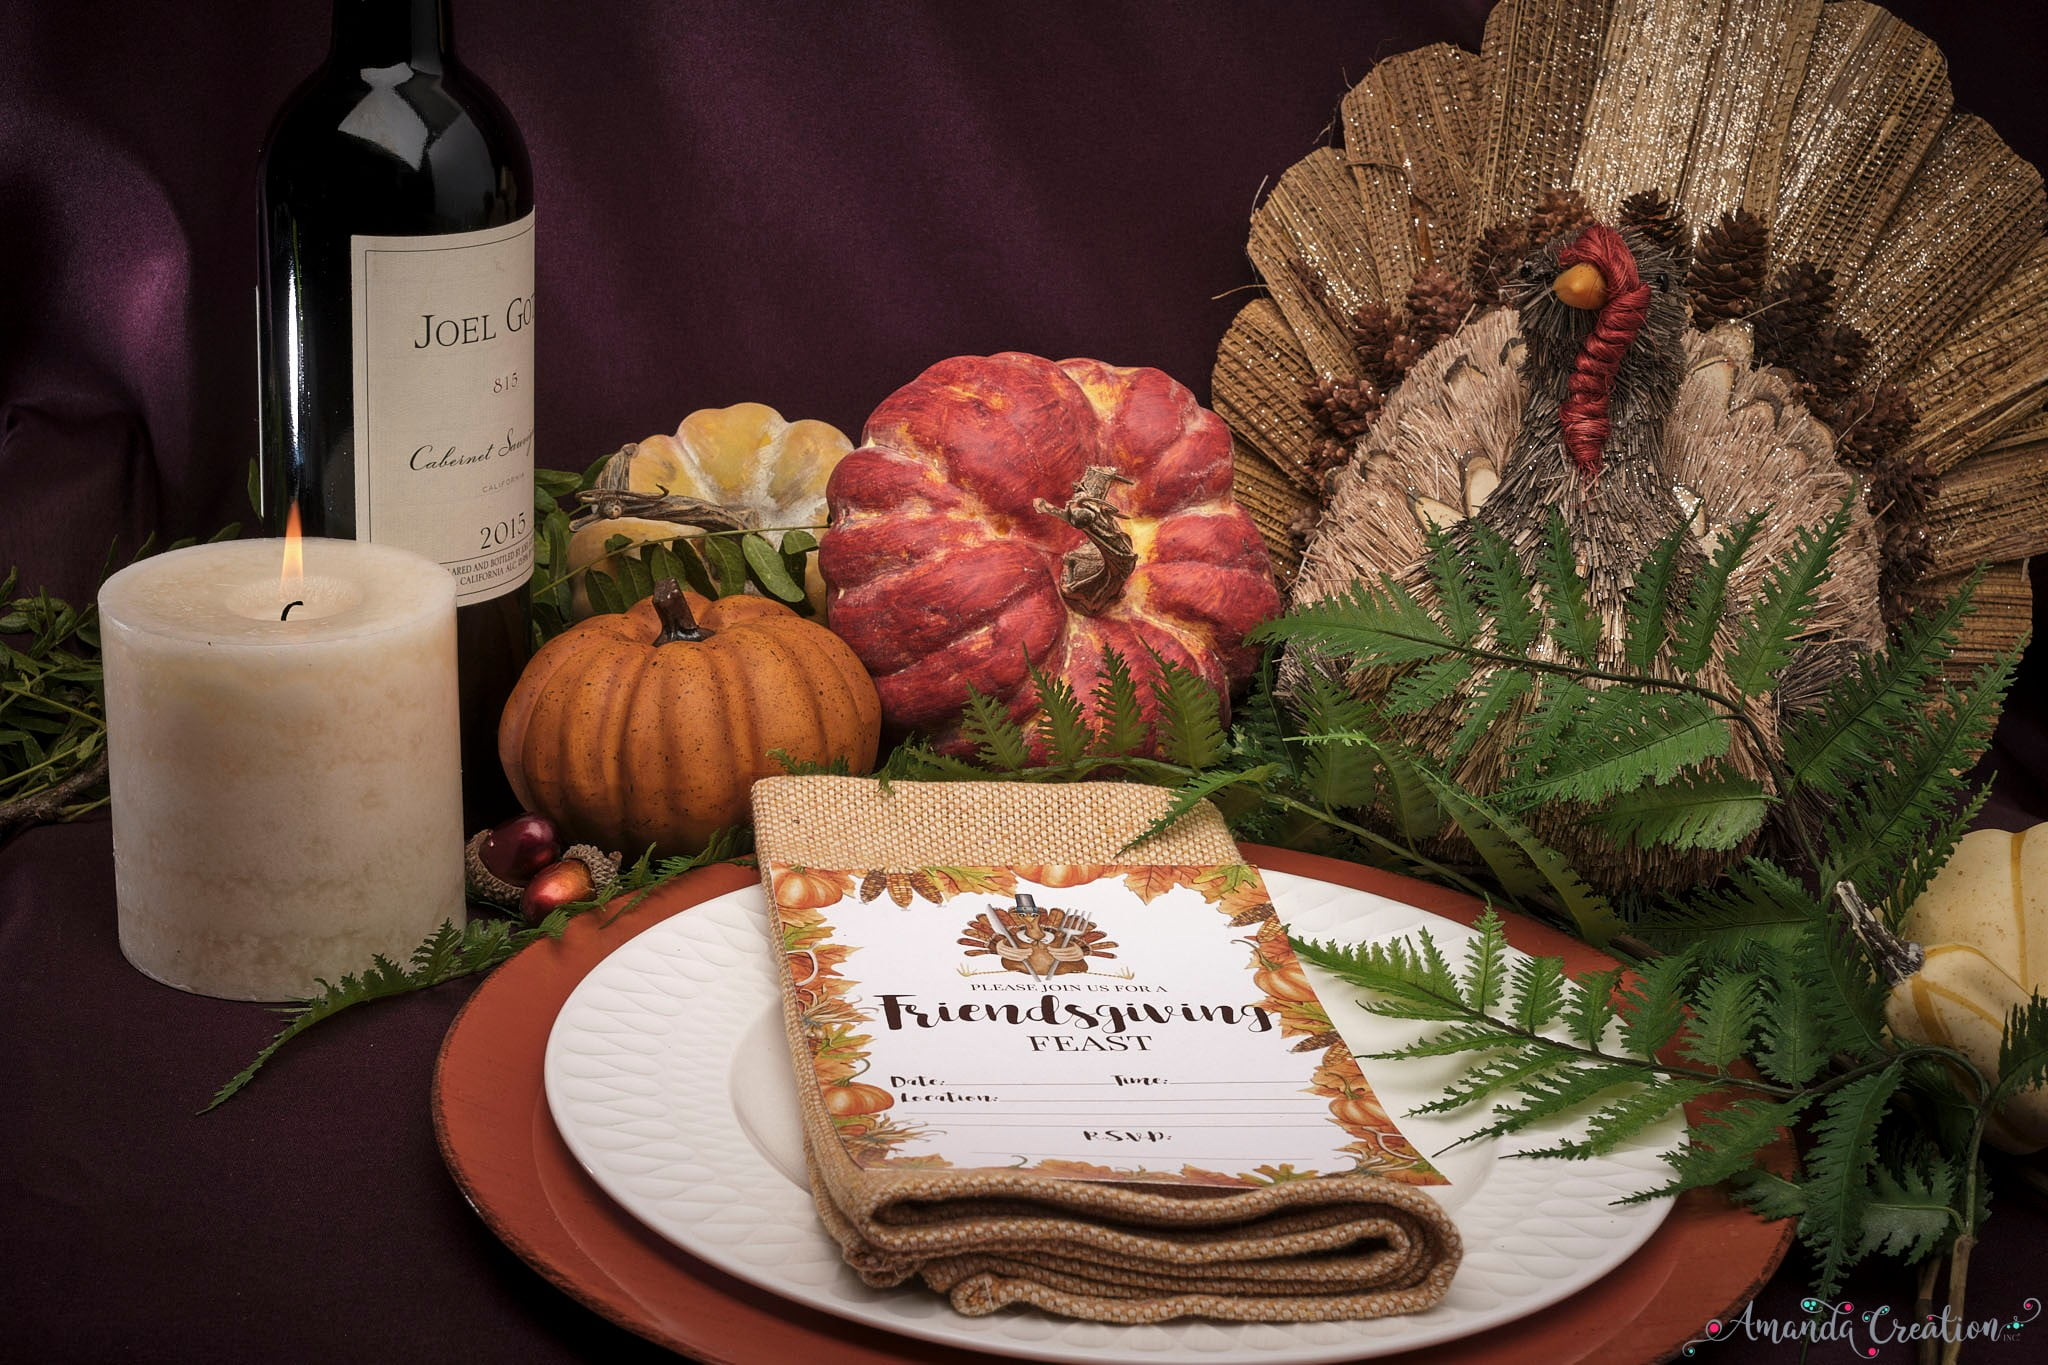 friendsgiving party invitations